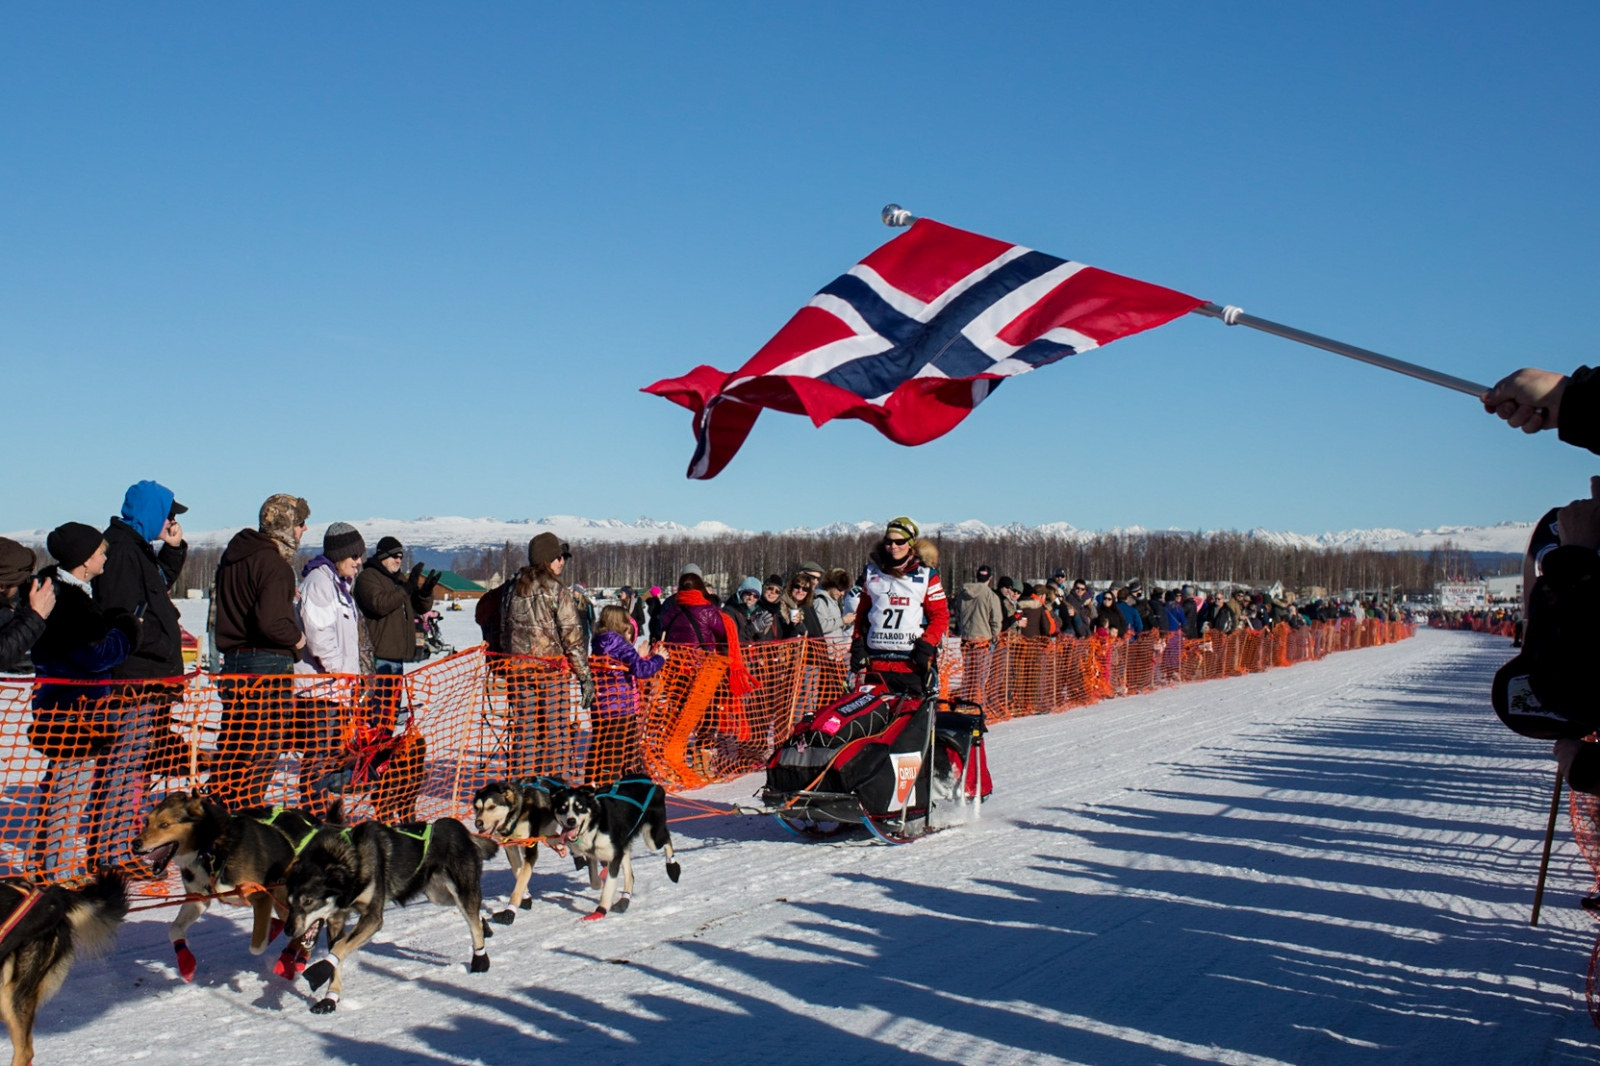 A fan waves a Norwegian flag as Sigrid Ekran of Norway mushes past during the 2016 Iditarod restart in Willow Alaska on March 6, 2016.